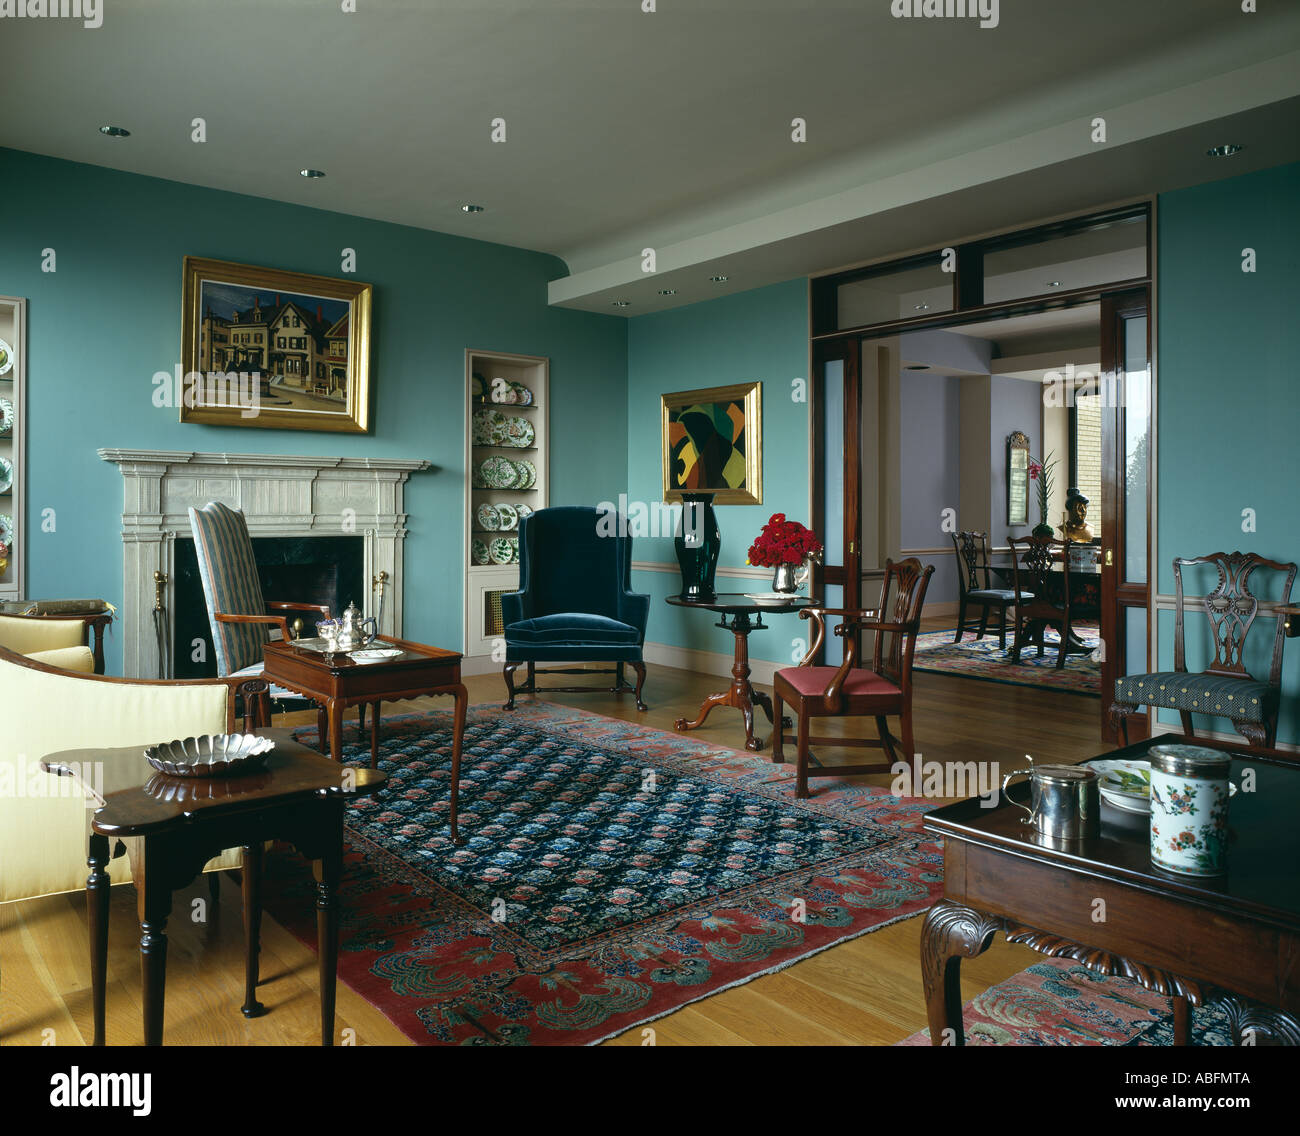 apartment furniture nyc. Steinberg Apartment, New York. Living Room With Chippendale Furniture And Khorasan Carpets. Architect: Gwathmey Siegel Apartment Nyc